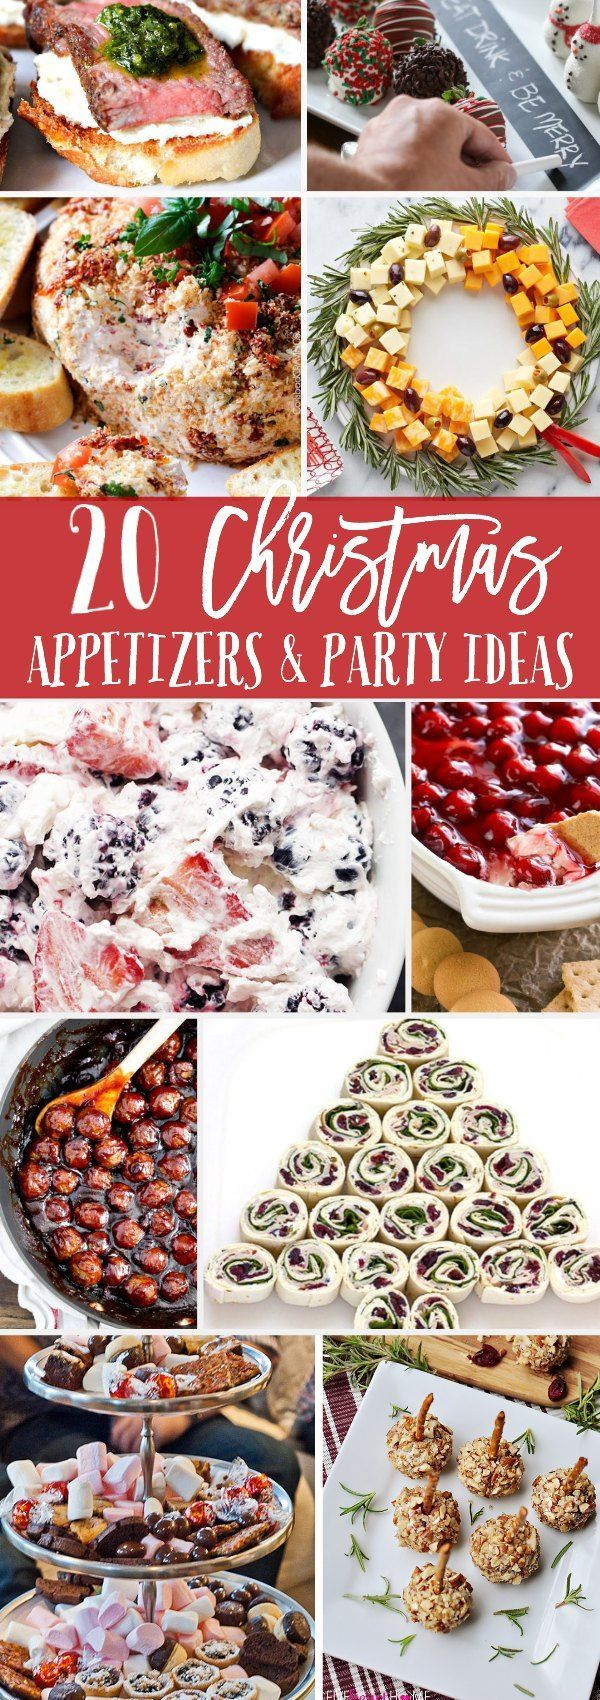 Christmas Appetizers and Party Ideas that will help you entertain and feed your guests this holiday season. Full of Christmas recipe ideas and tips.